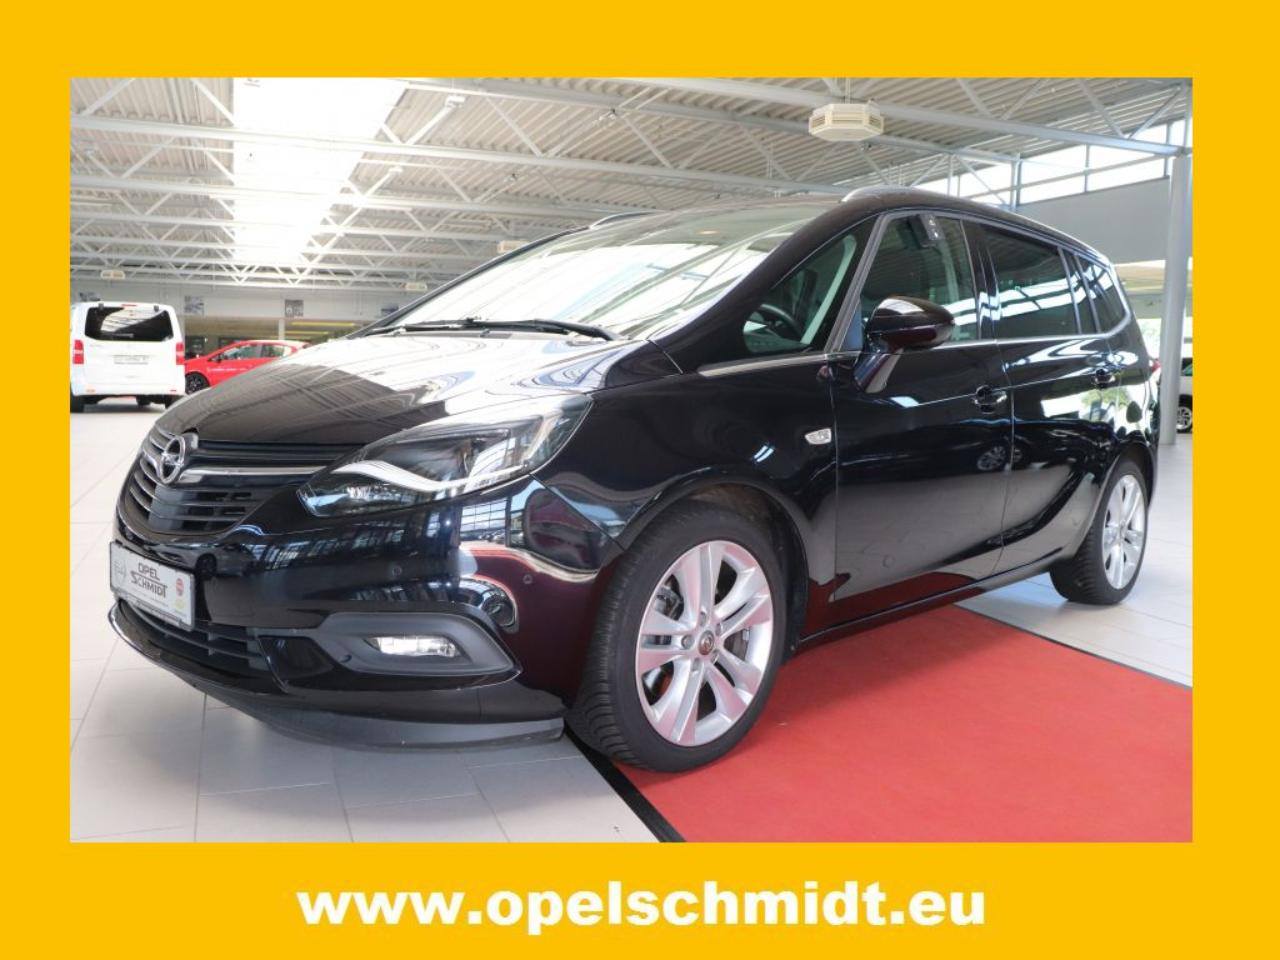 Opel Zafira 2.0 CDTi S/S Business Innovation